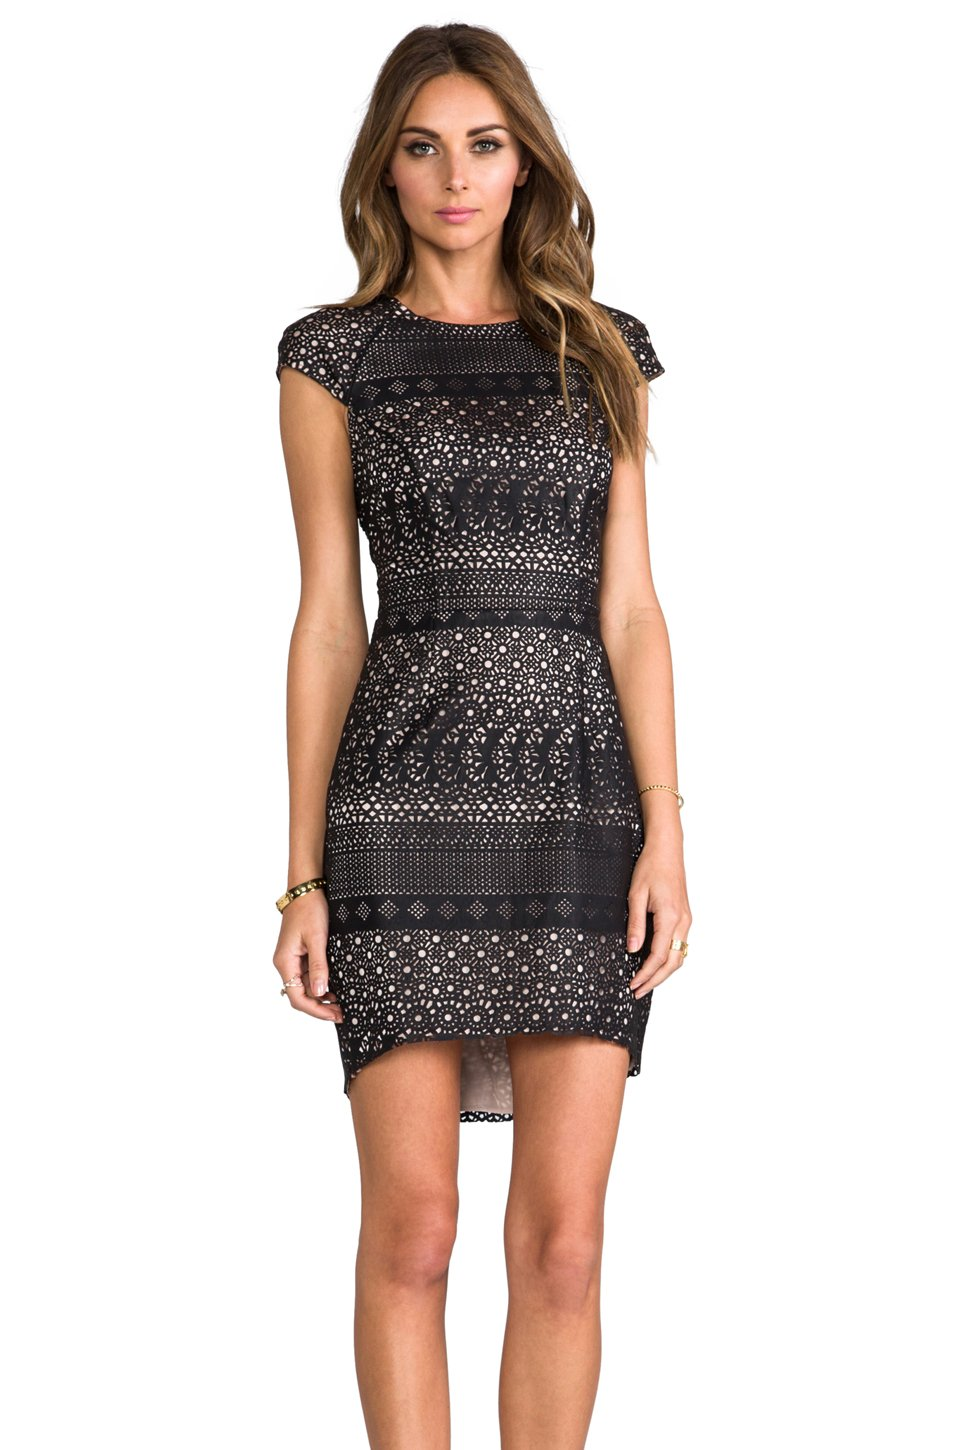 Tracy Reese Dresses